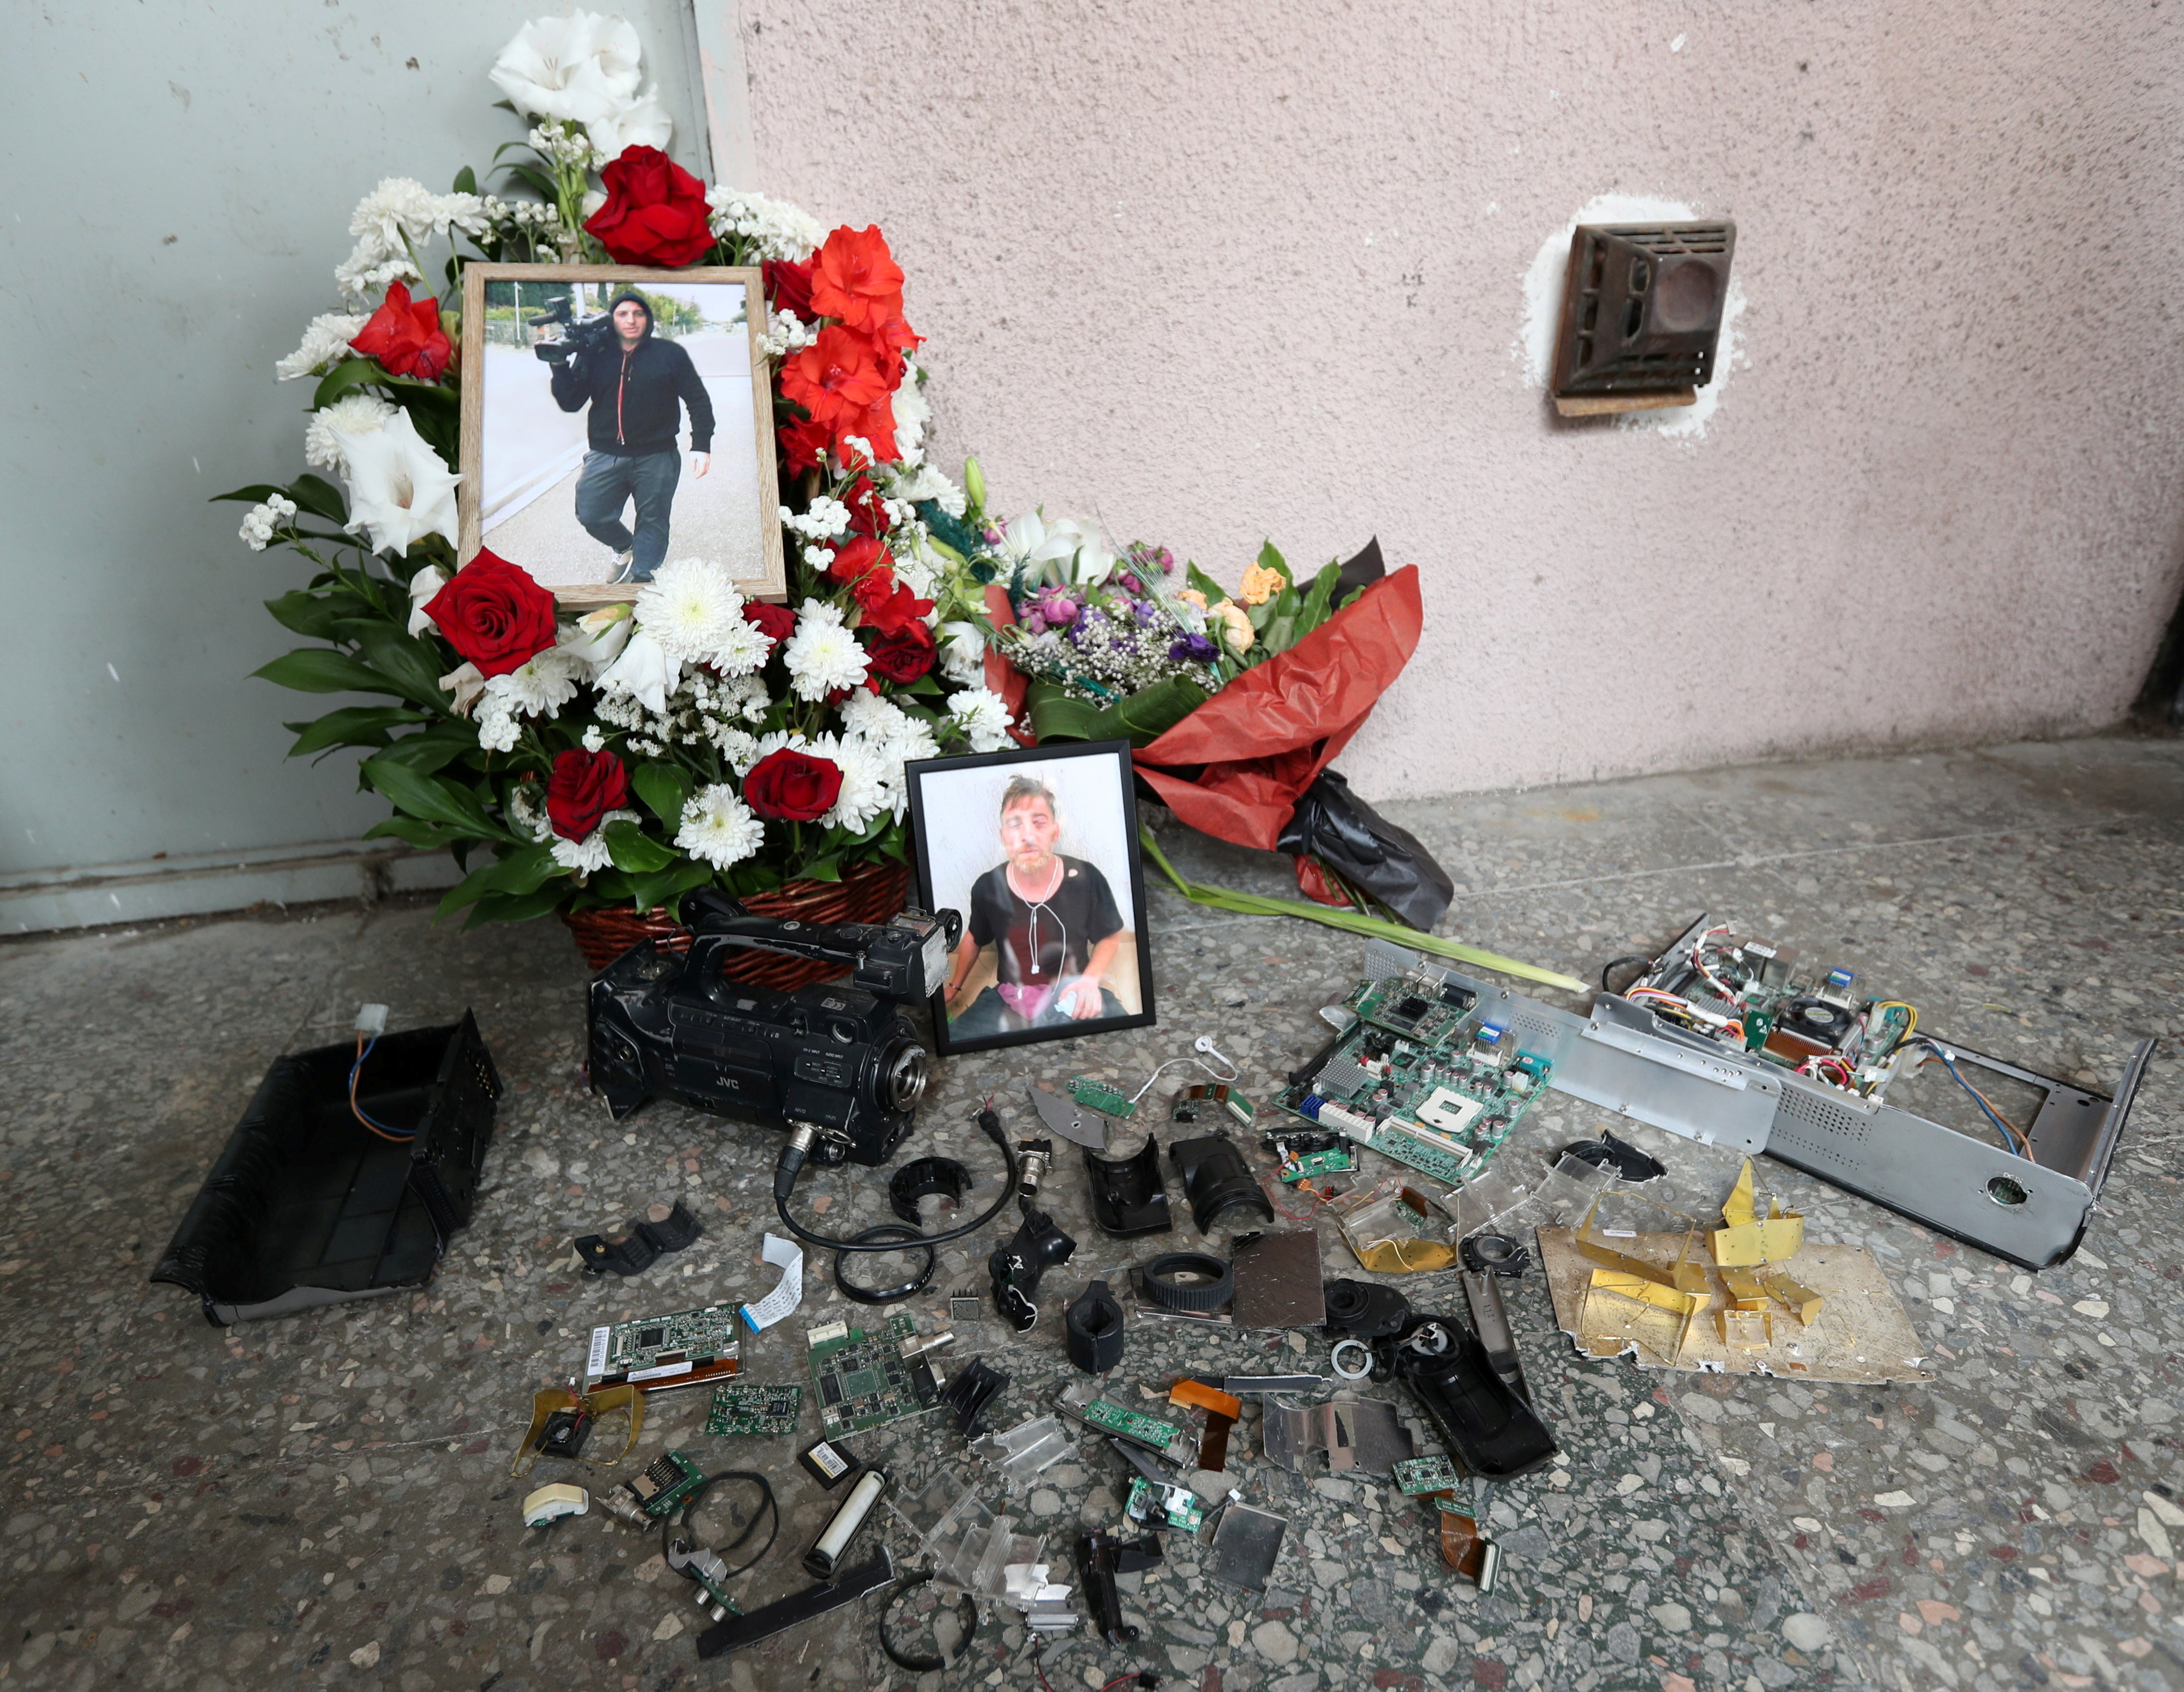 Portraits of journalist Alexander Lashkarava are placed next to a broken camera during his funeral in Tbilisi, Georgia July 13, 2021. Lashkarava was found dead at his home several days after he was beaten during attacks on LGBT+ activists in Tbilisi. REUTERS/Irakli Gedenidze/File Photo